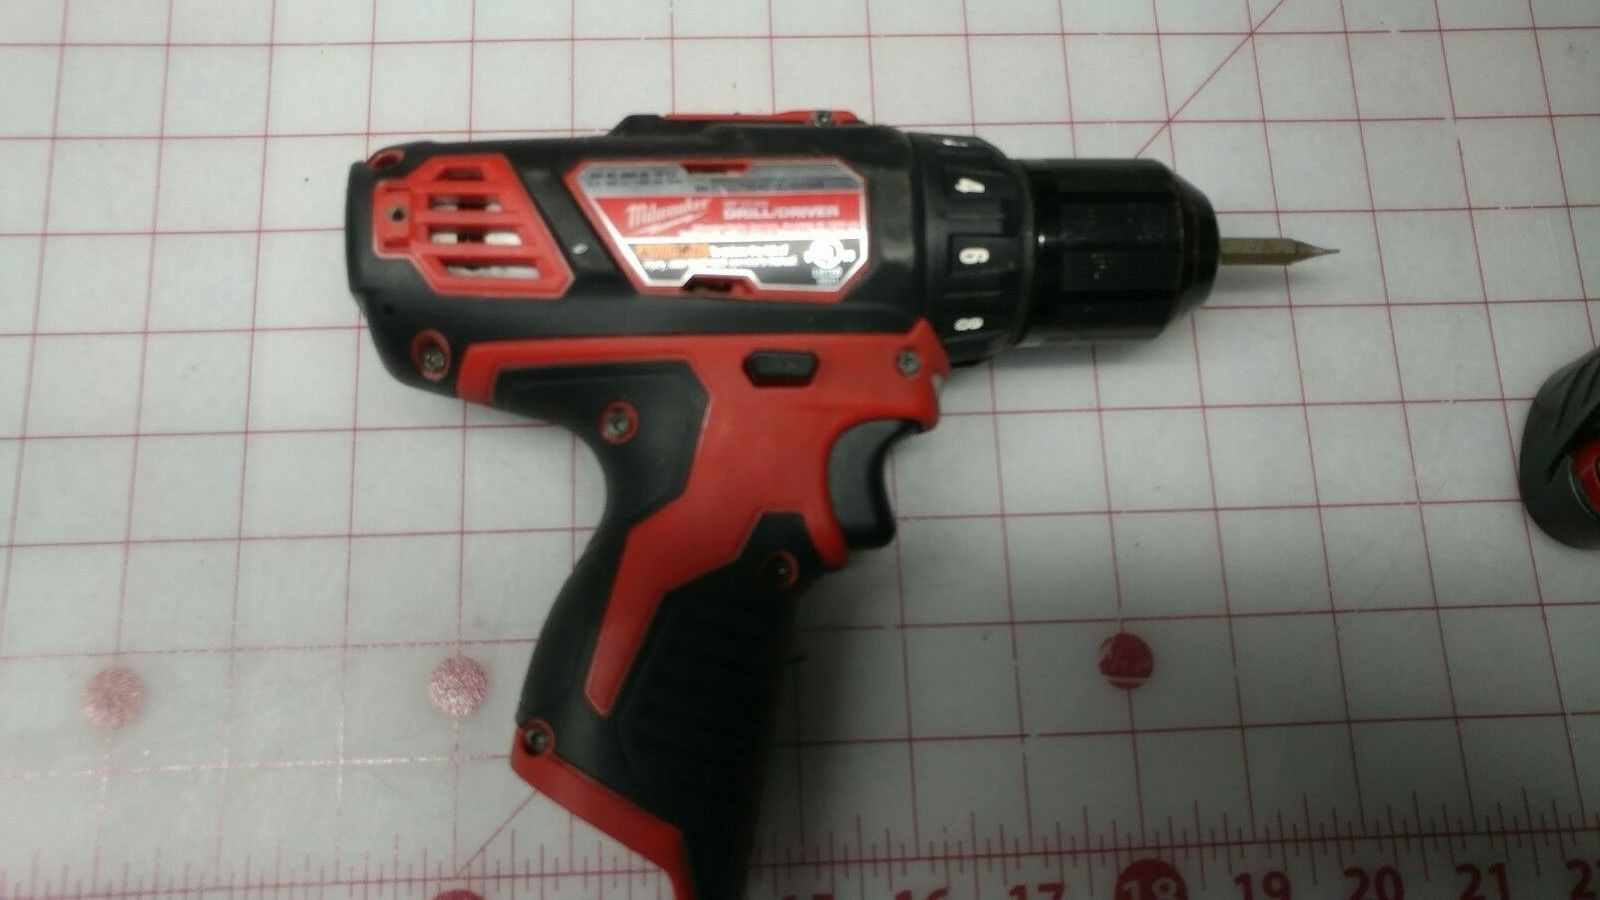 Milwaukee M12 12V 3/8-Inch Drill Driver 2407-20 Tool Only  - $27.00